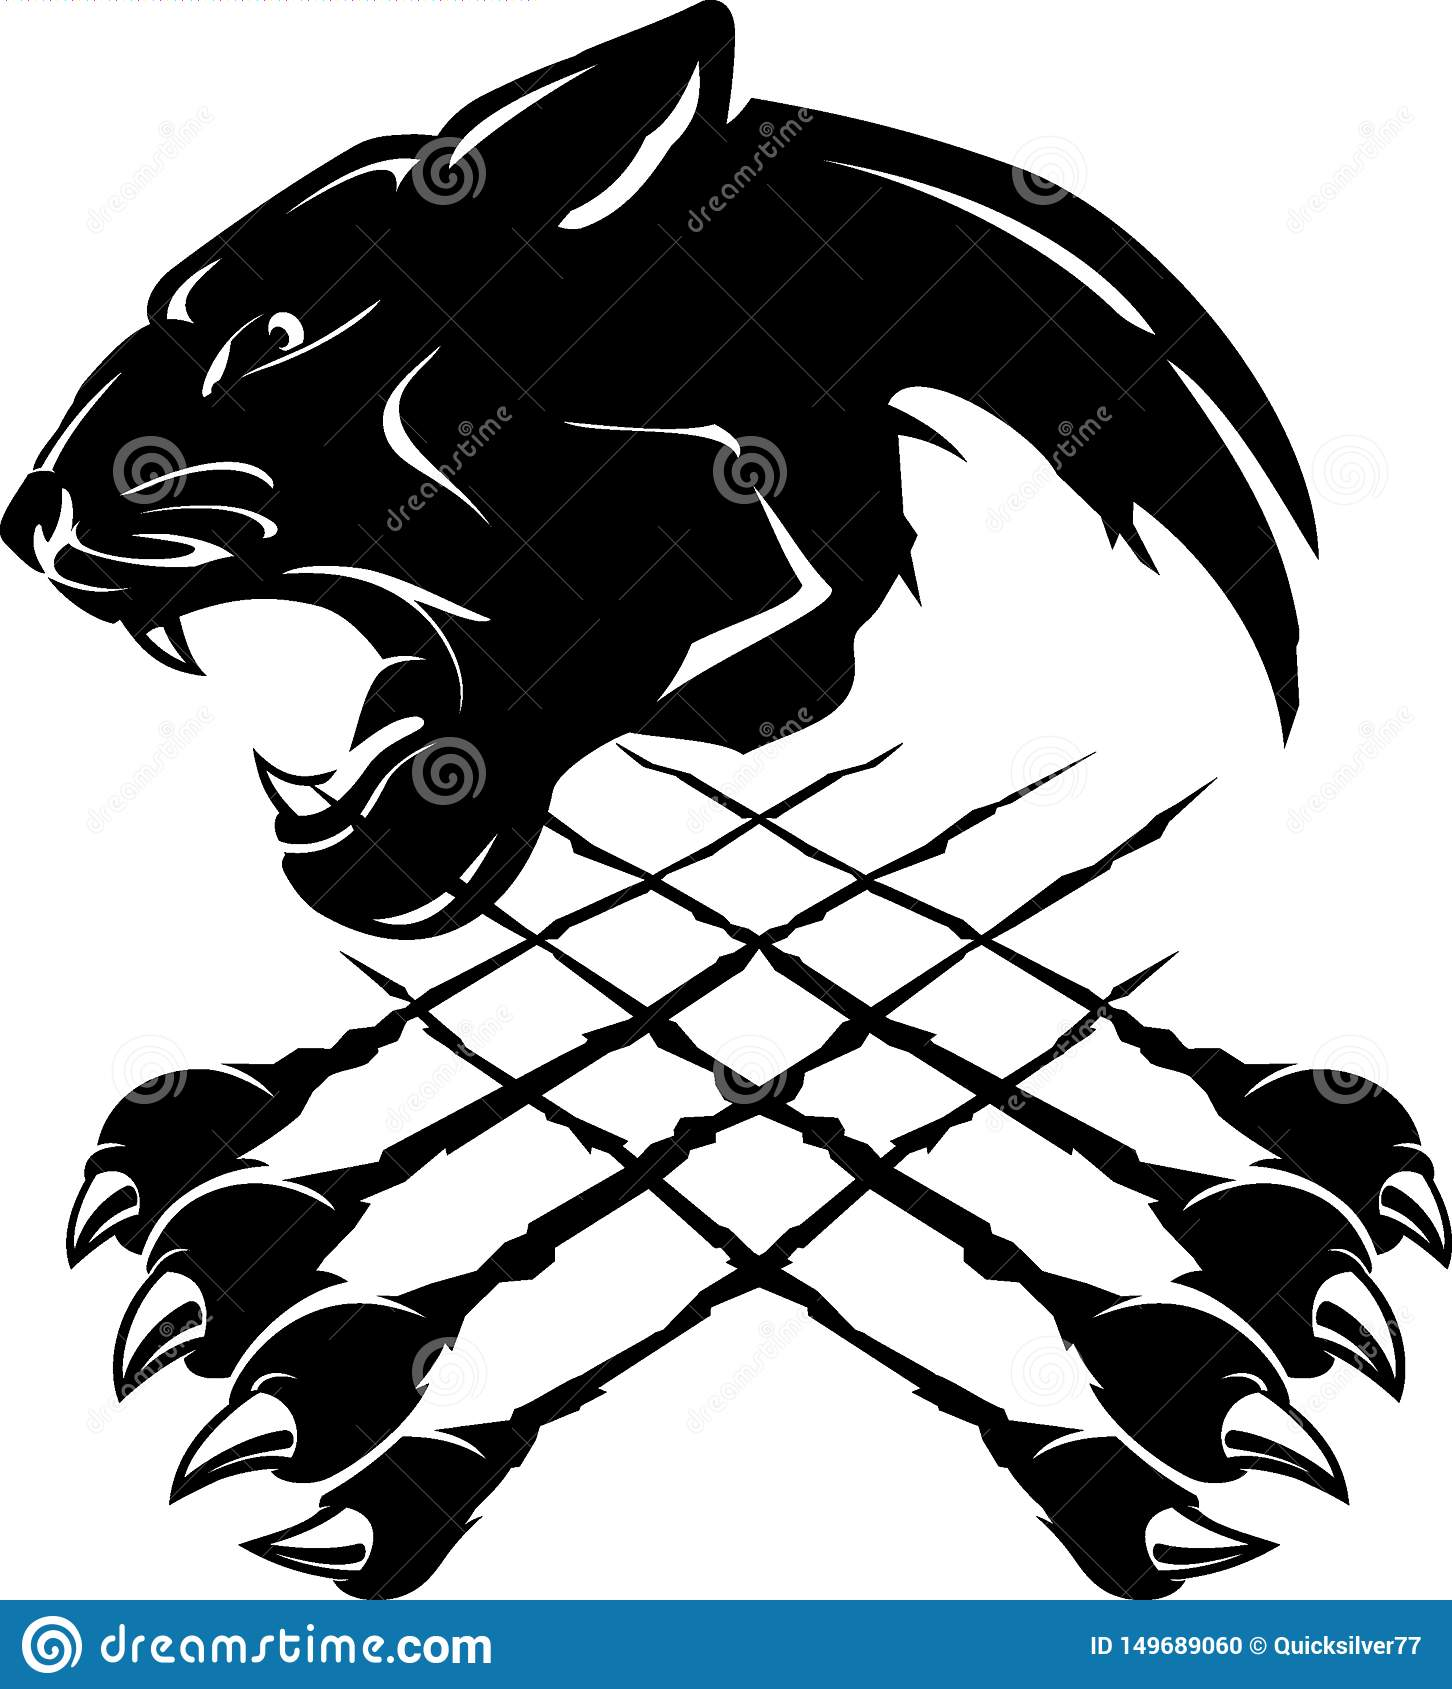 Black Mouth Open Panther Stock Illustrations 48 Black Mouth Open Panther Stock Illustrations Vectors Clipart Dreamstime